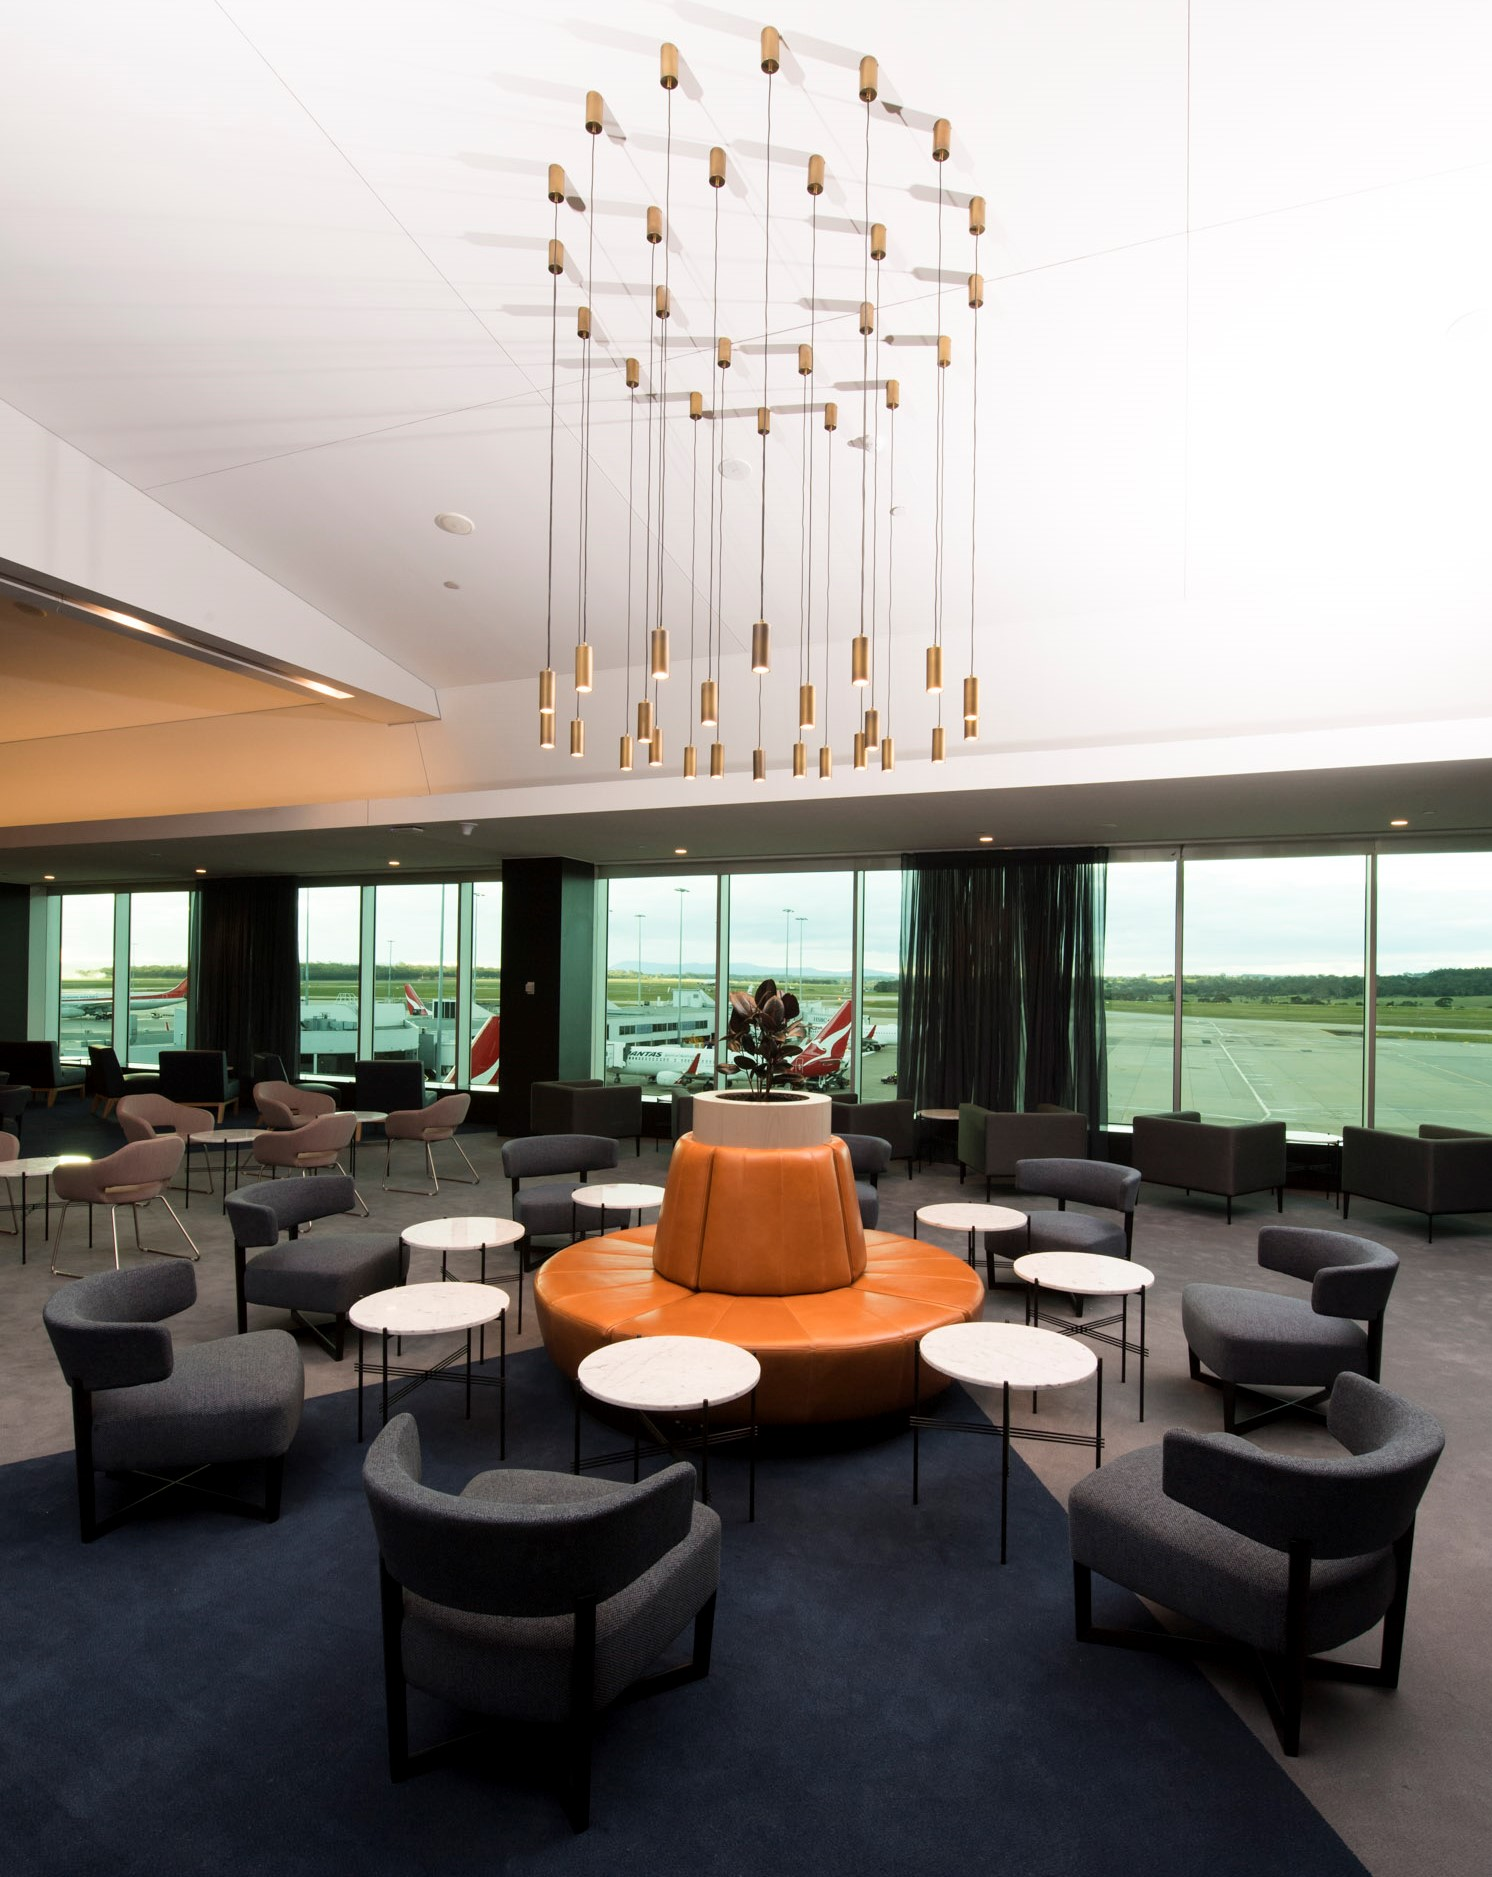 Melbourne Domestic Business Lounge